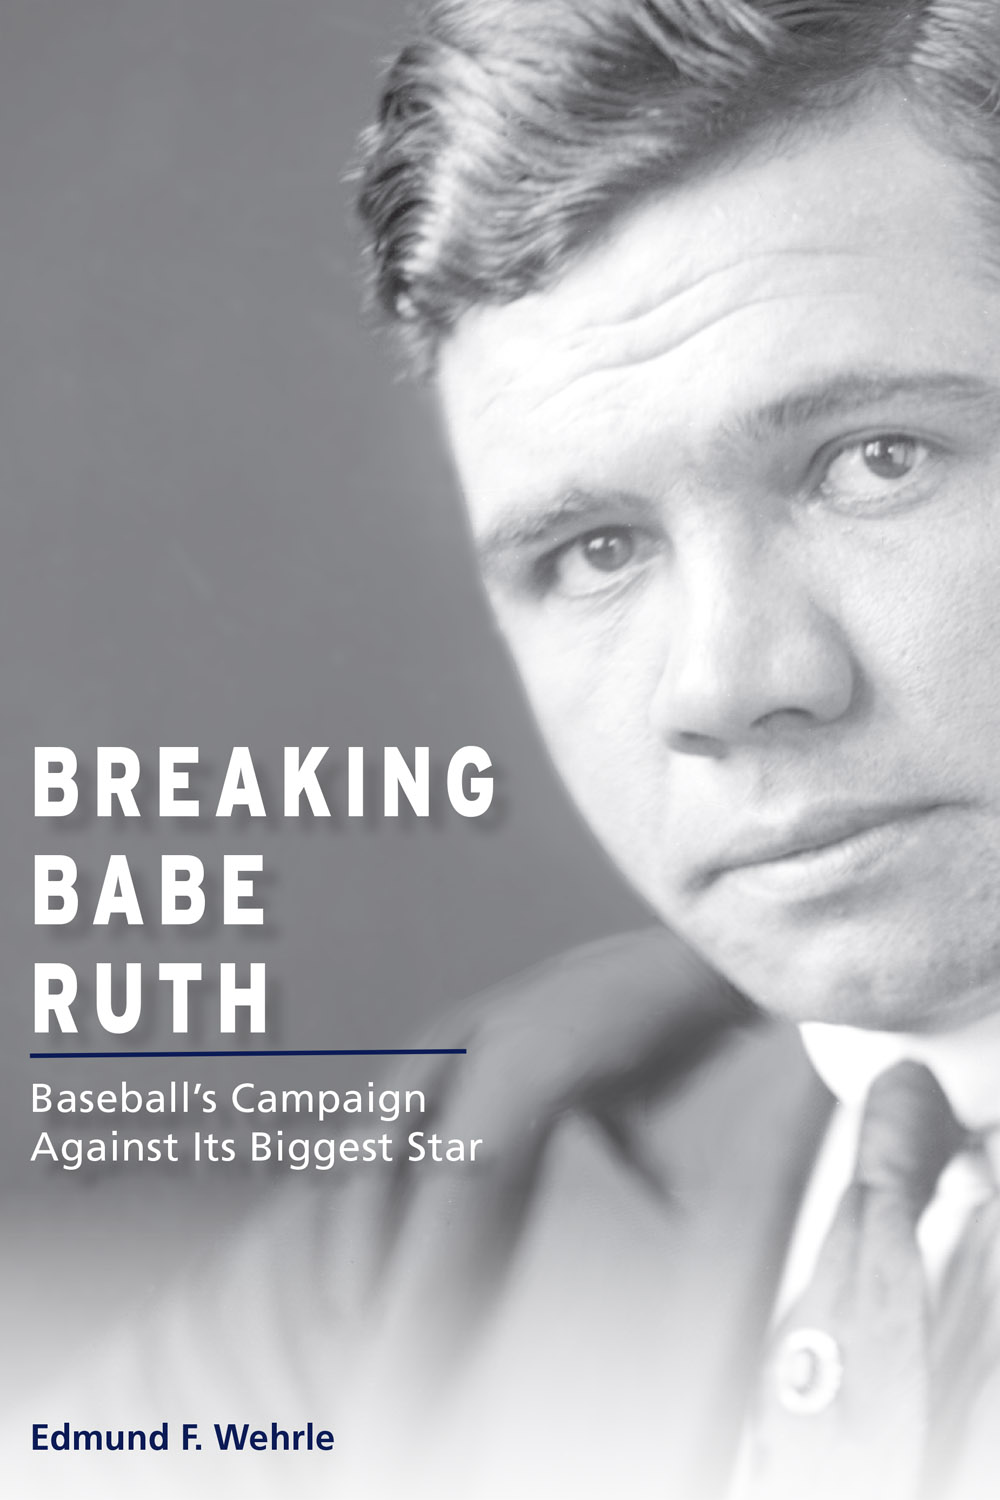 sports and american culture: breaking babe ruth: baseball's campaign